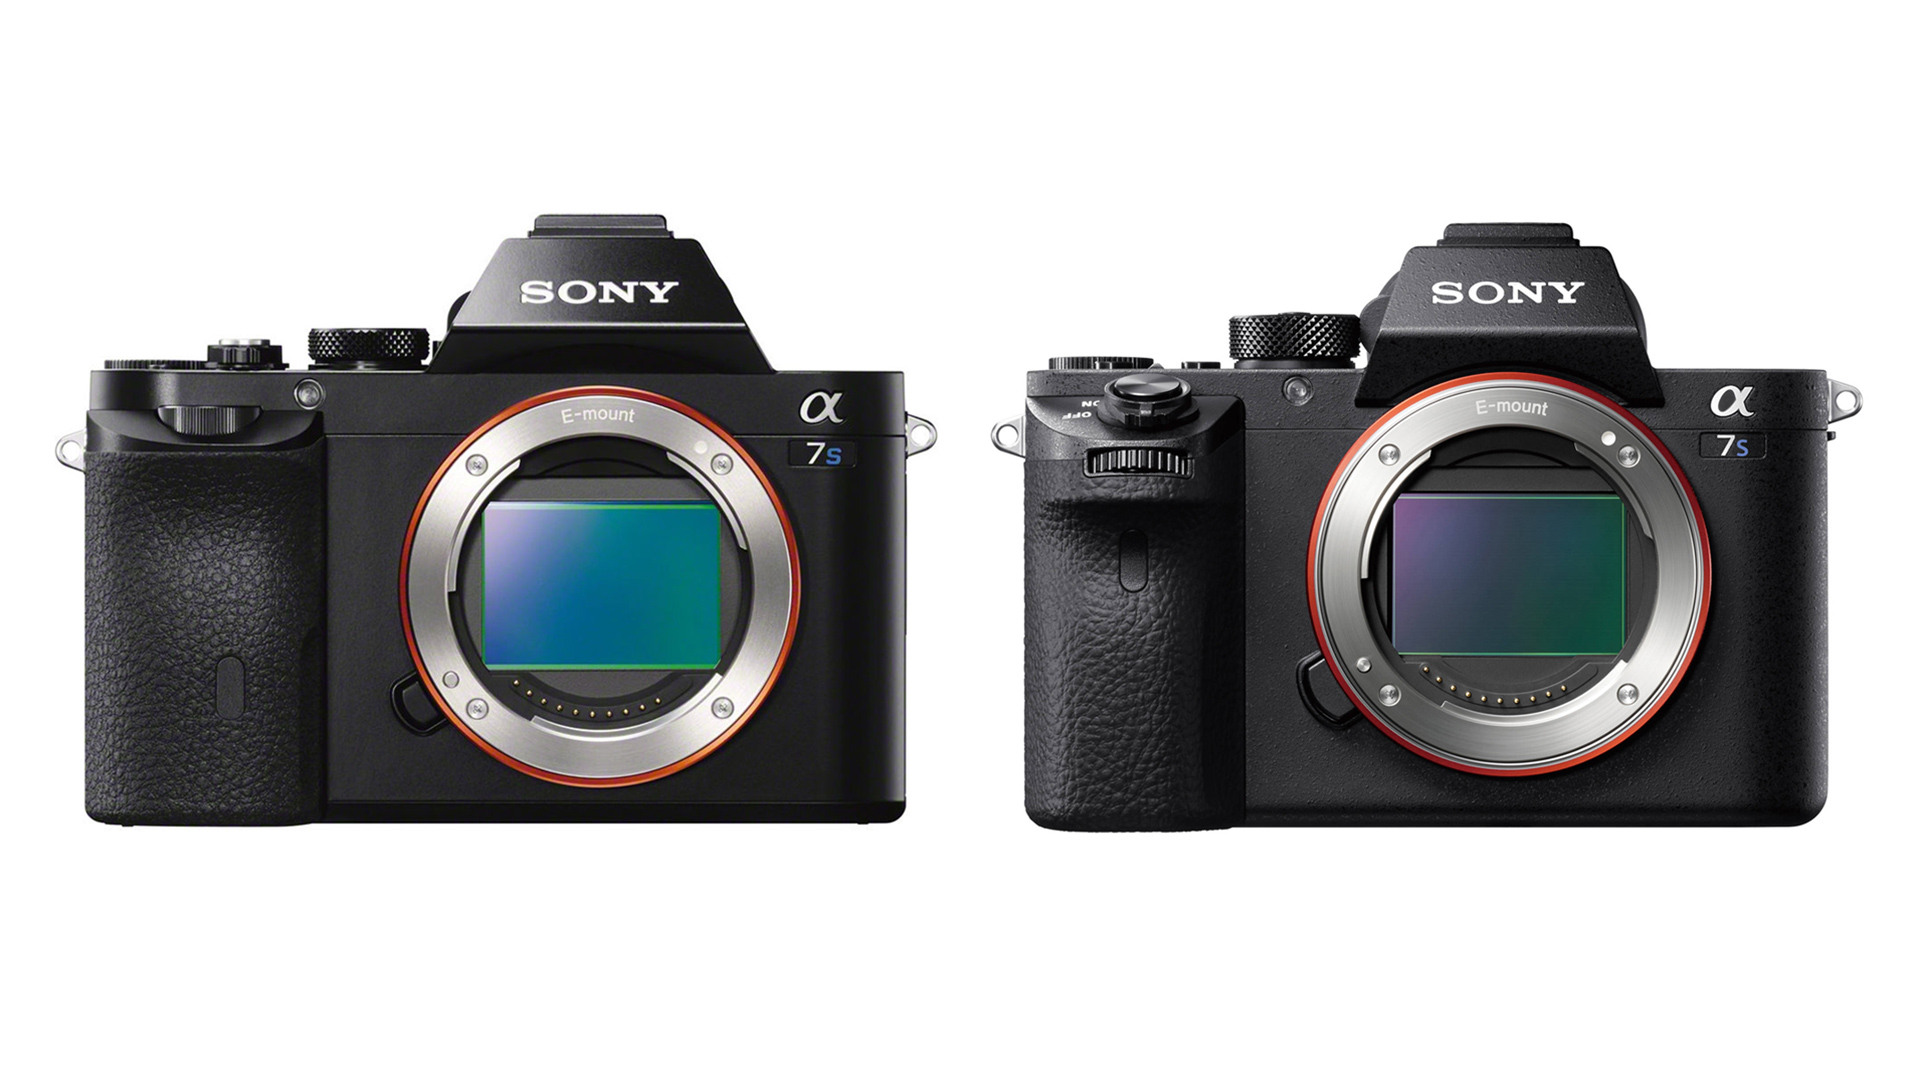 Spot the difference. The A7S II offers some big new features over its predecessor, but you can still do very effective work with the Mk. 1